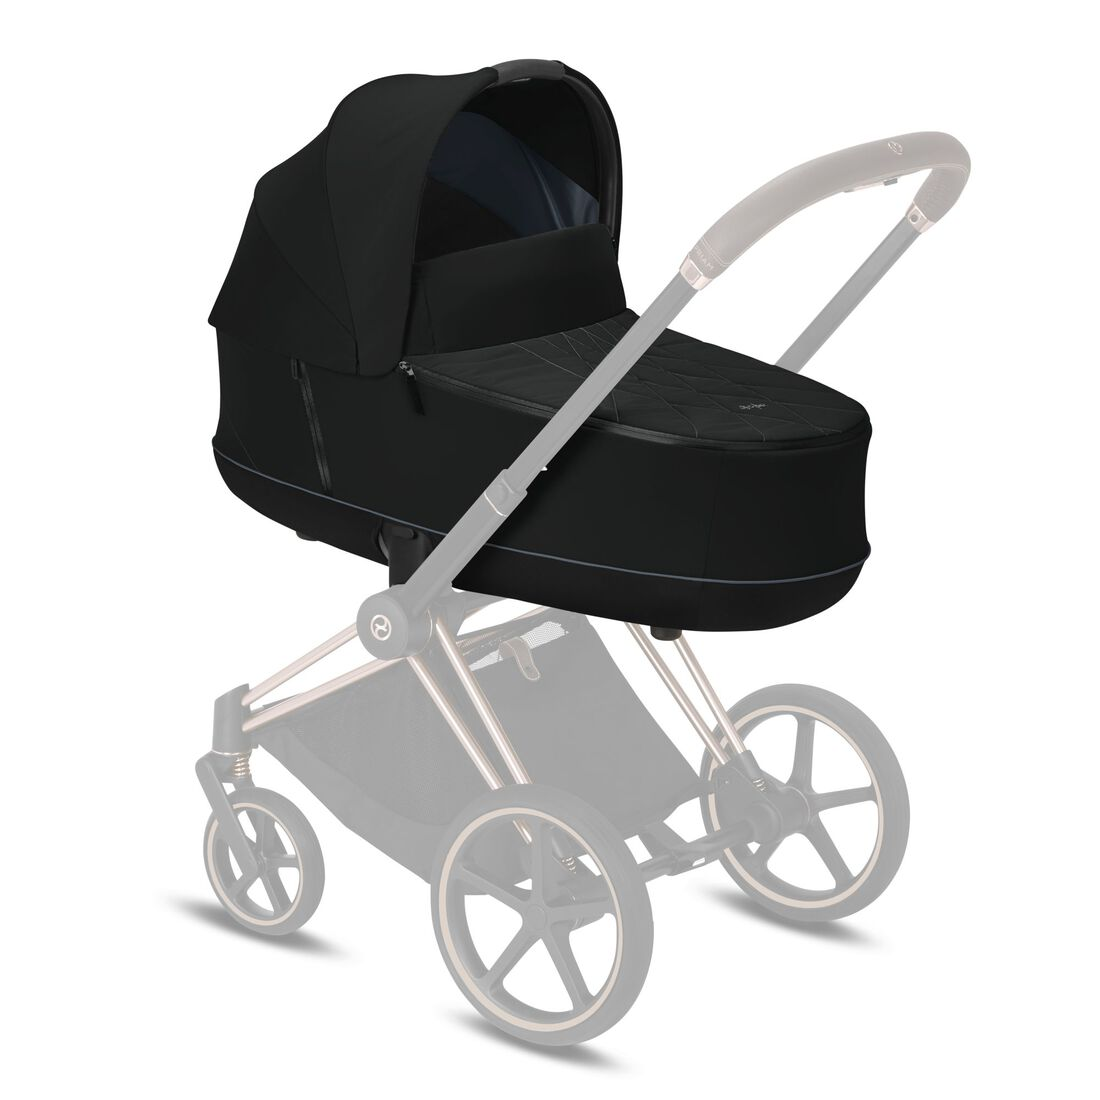 CYBEX Konfiguration e-Priam Set: Rahmen, Lux Carry Cot, Cloud Z i-Size, Sitzpaket in  large Bild 6